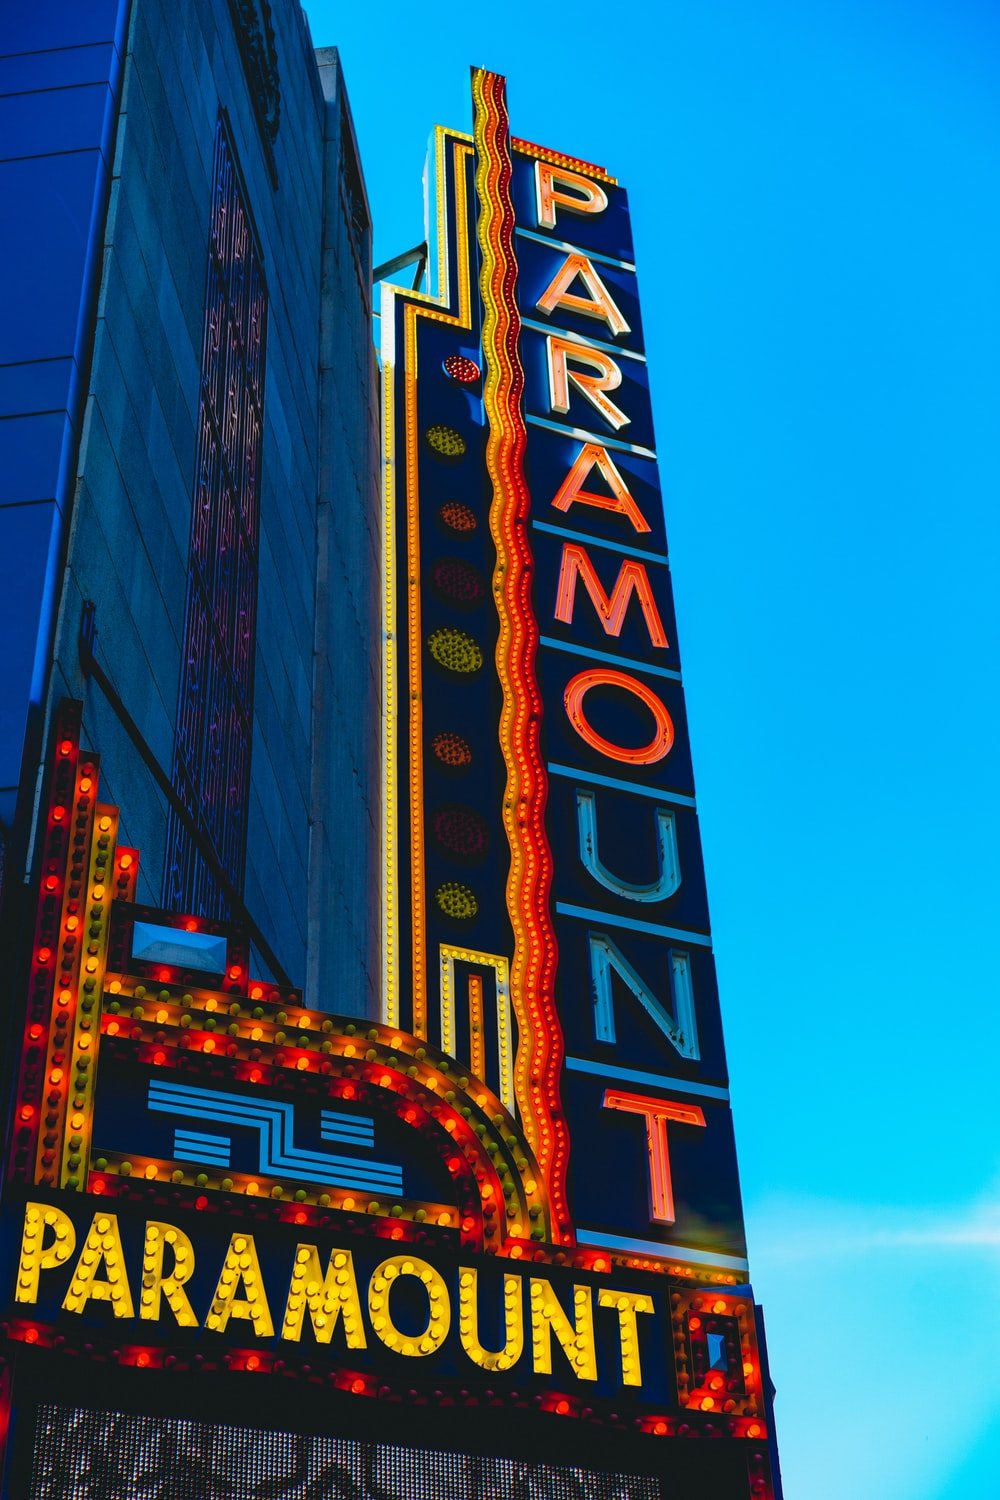 photo of Paramount signboard under clear blue sky